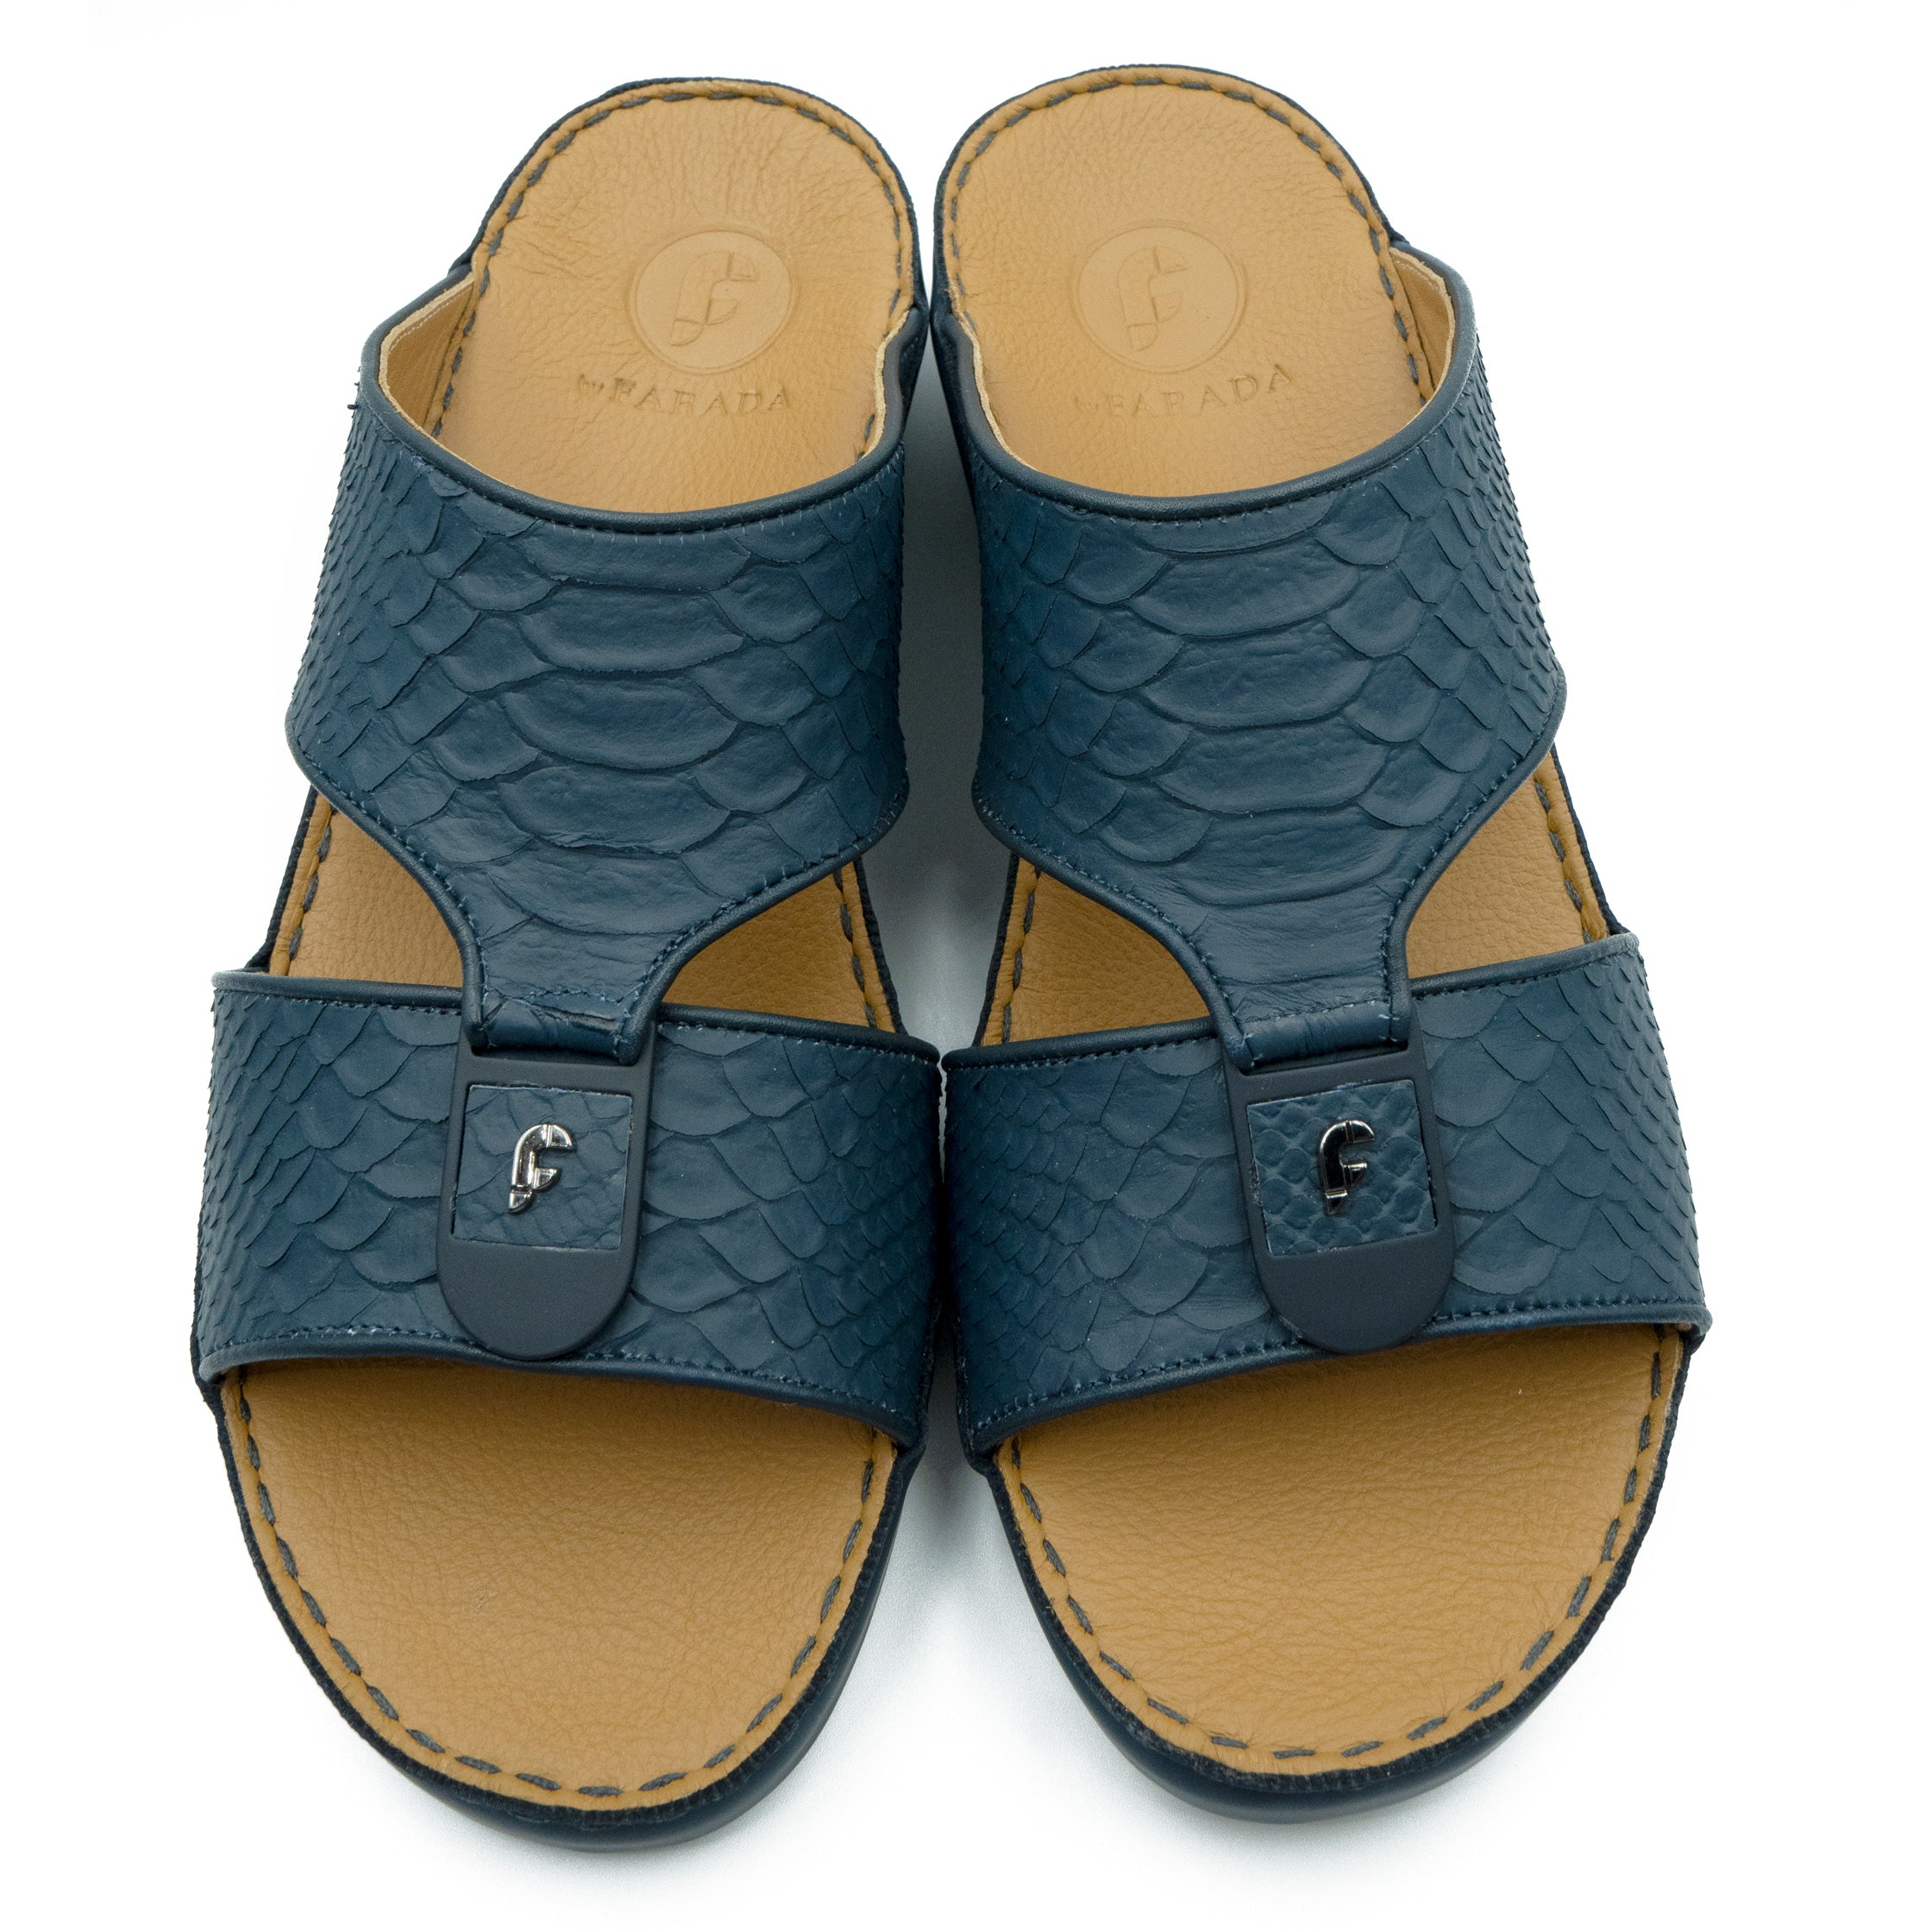 Navy F Pitone (317-88) Arabic Sandals by F